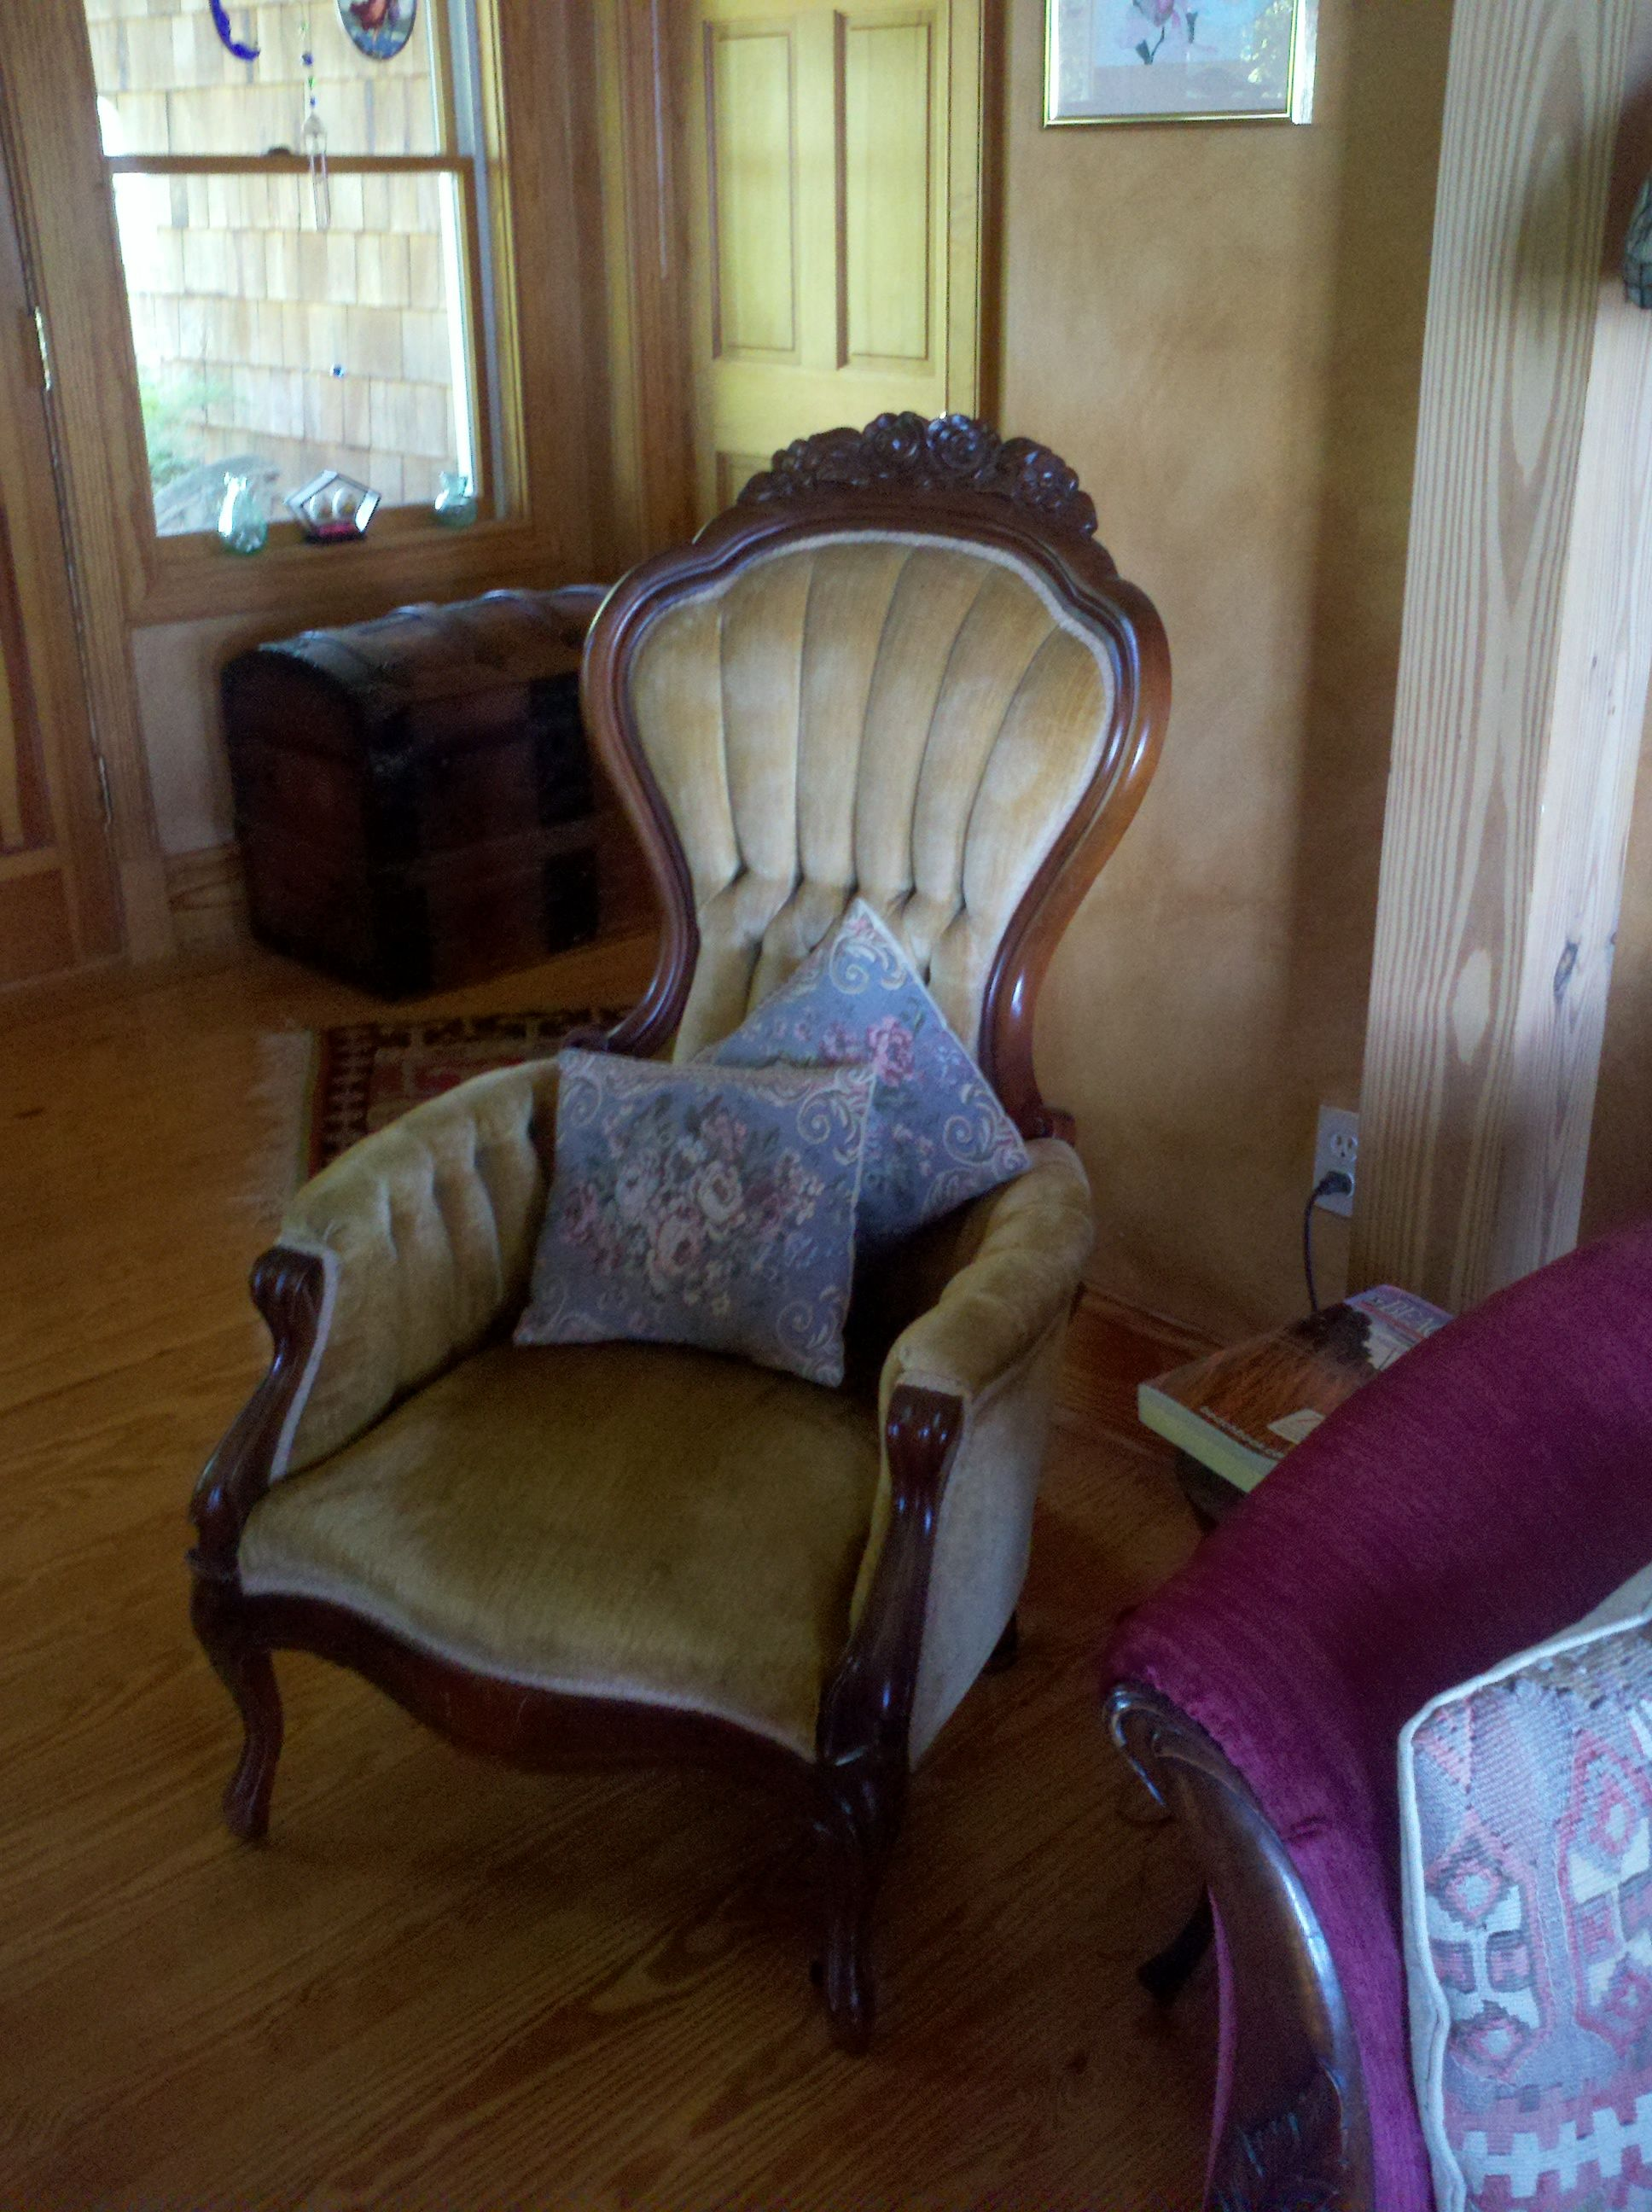 We Have A Great Victorian Couch In The Same Style And Fabric As This One!